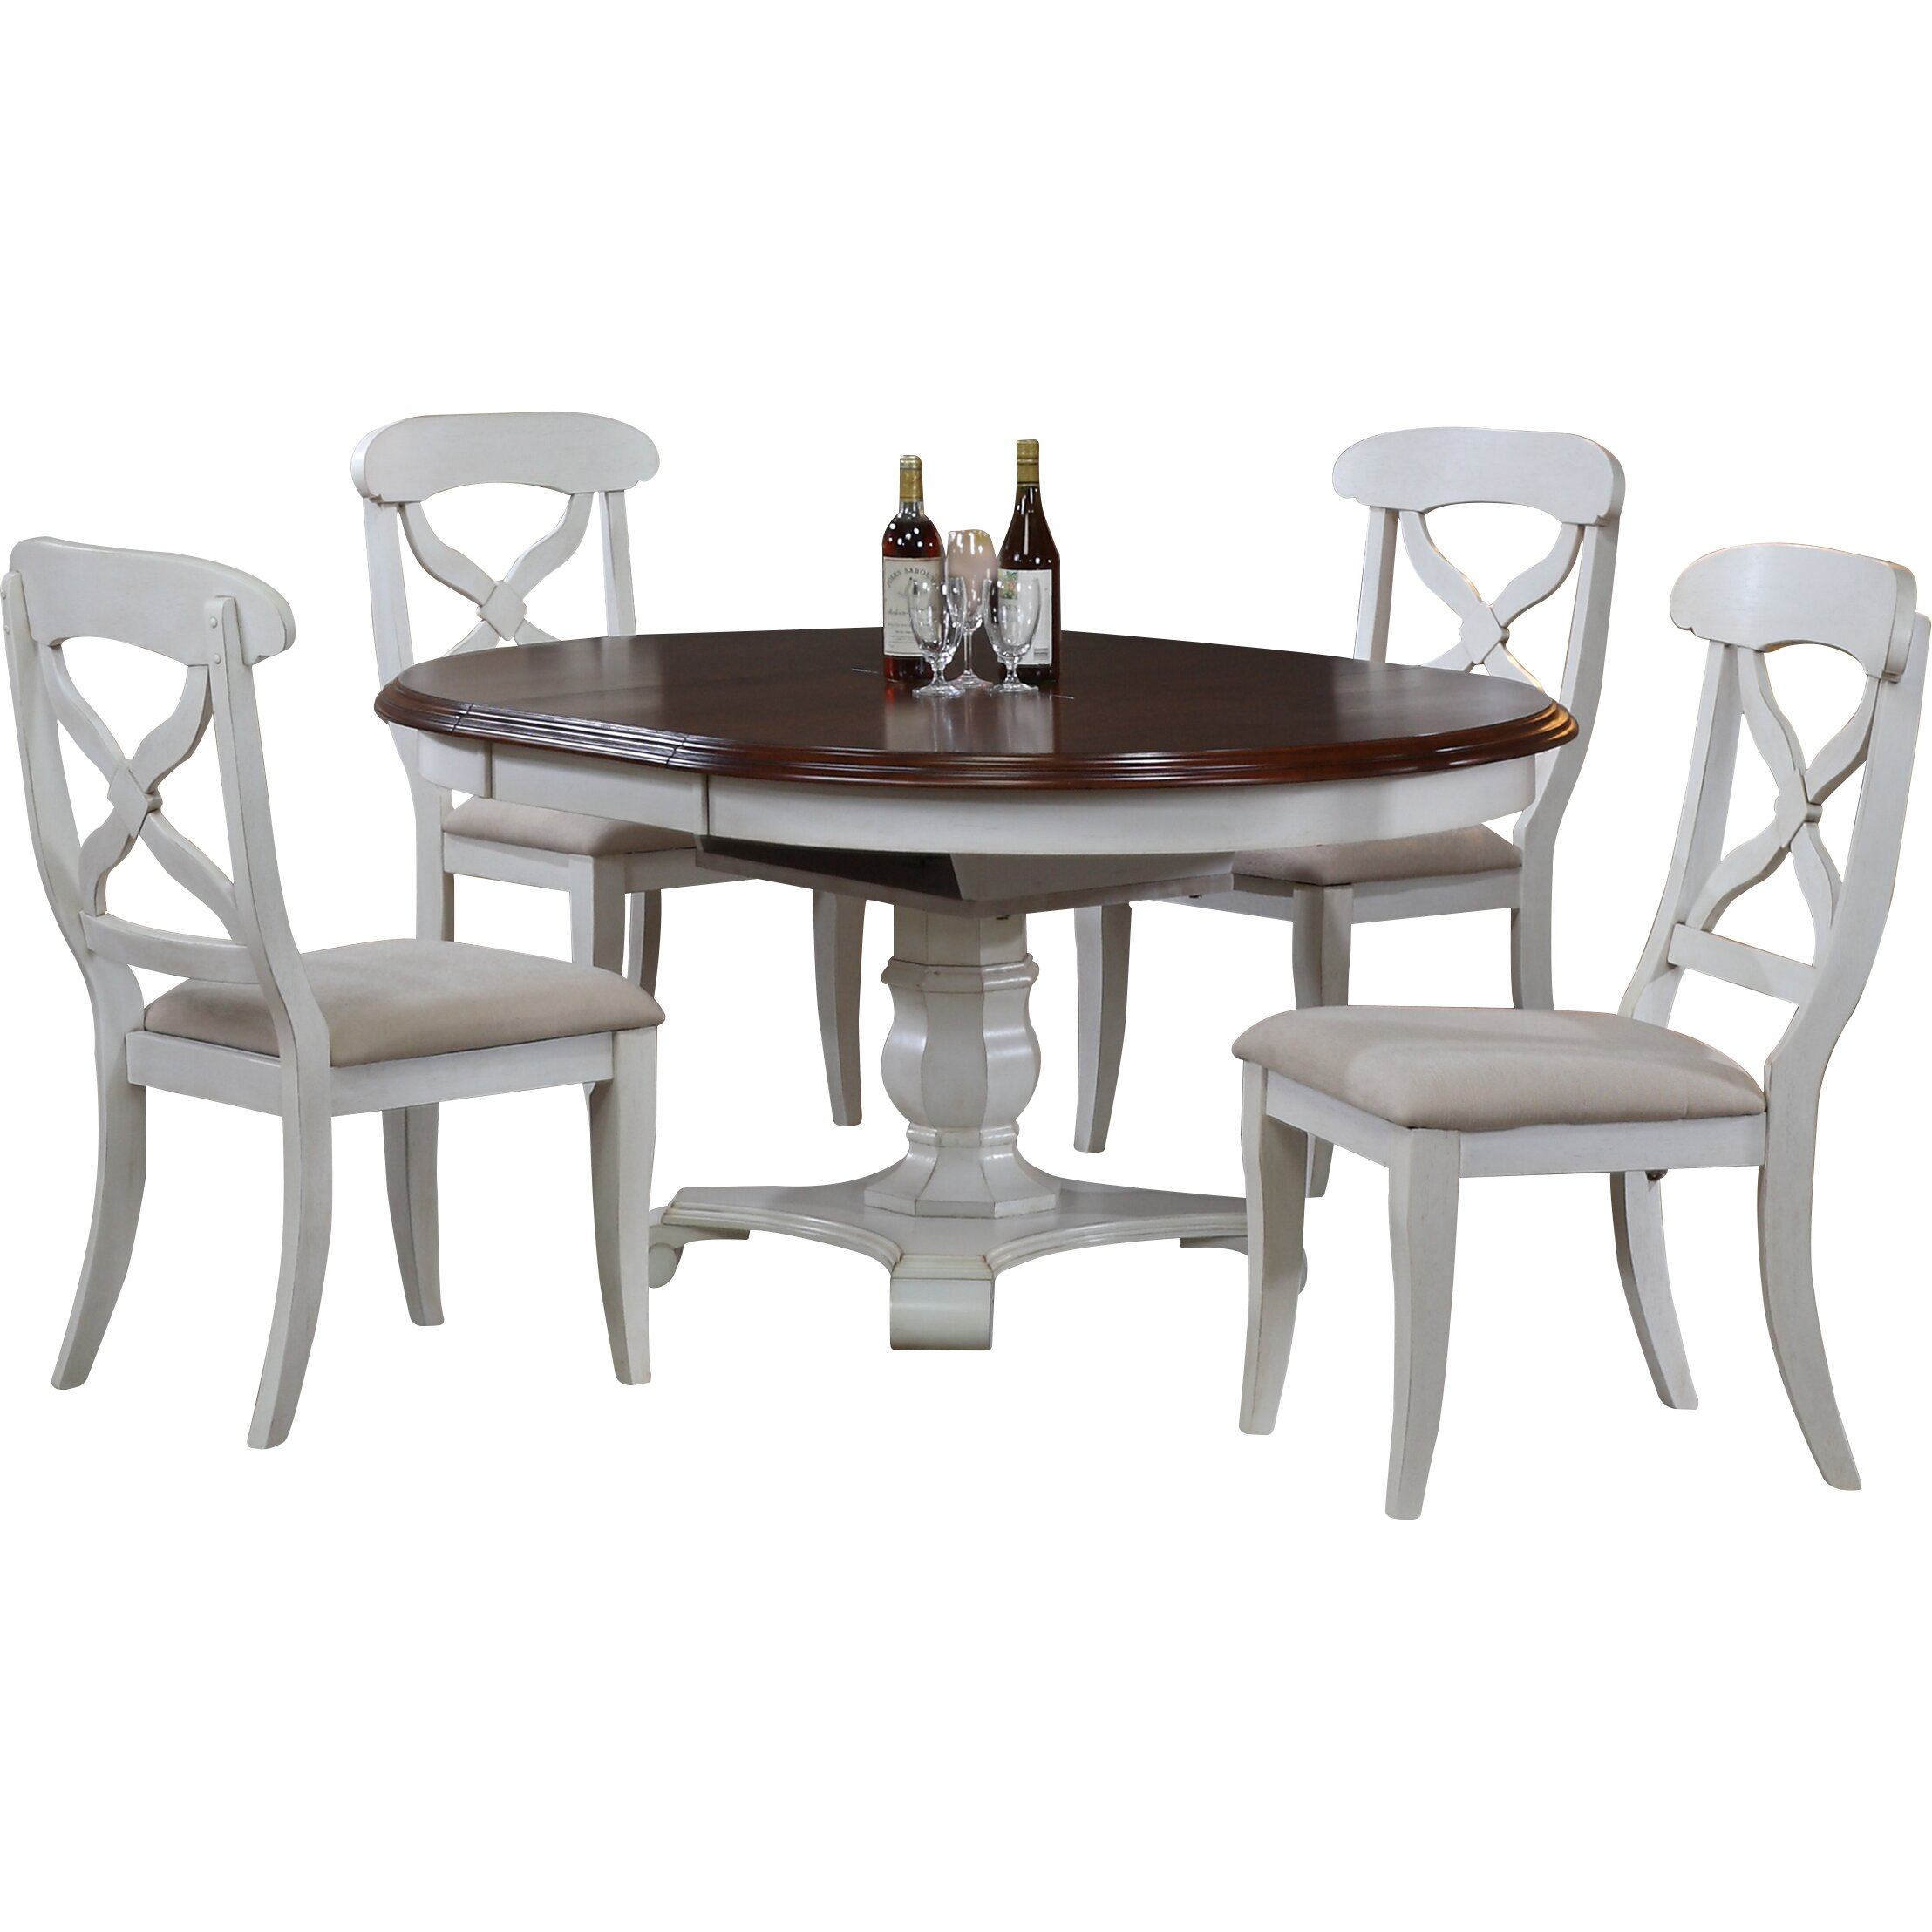 August Grove Britney Butterfly Leaf 5 Piece Dining Set